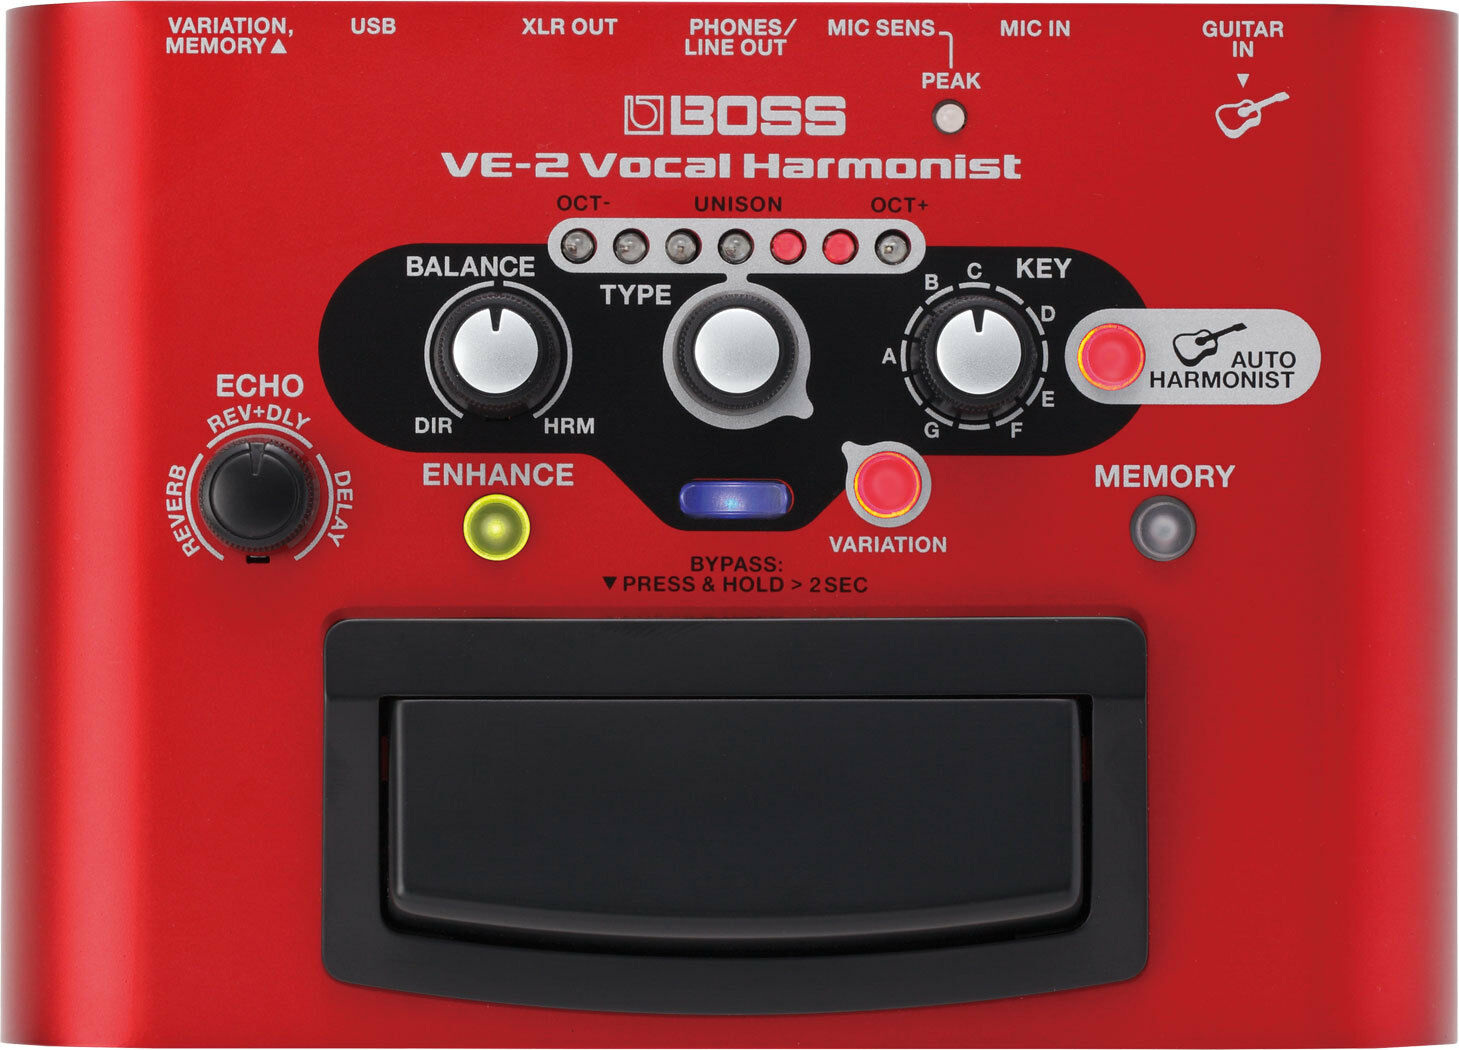 Boss Ve 2 Vocal Harmonist Battery Powered Portable Effects Fx Circuits Gt Dd Digital Delay Guitar Pedal Schematic Diagram 1 Of 5only Available